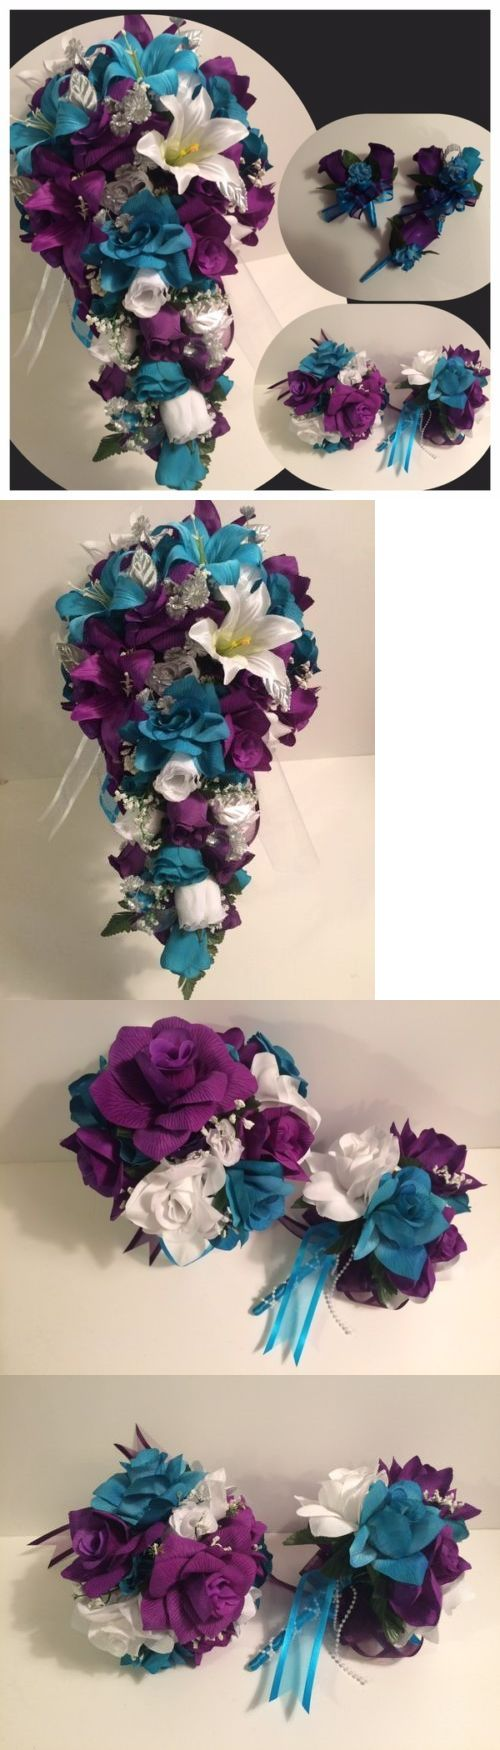 Flowers Petals and Garlands 20938: Purple Malibu Turquoise Tiger Lily Bridal Bouquet Cascade Package Boutonnieres -> BUY IT NOW ONLY: $239.99 on eBay!